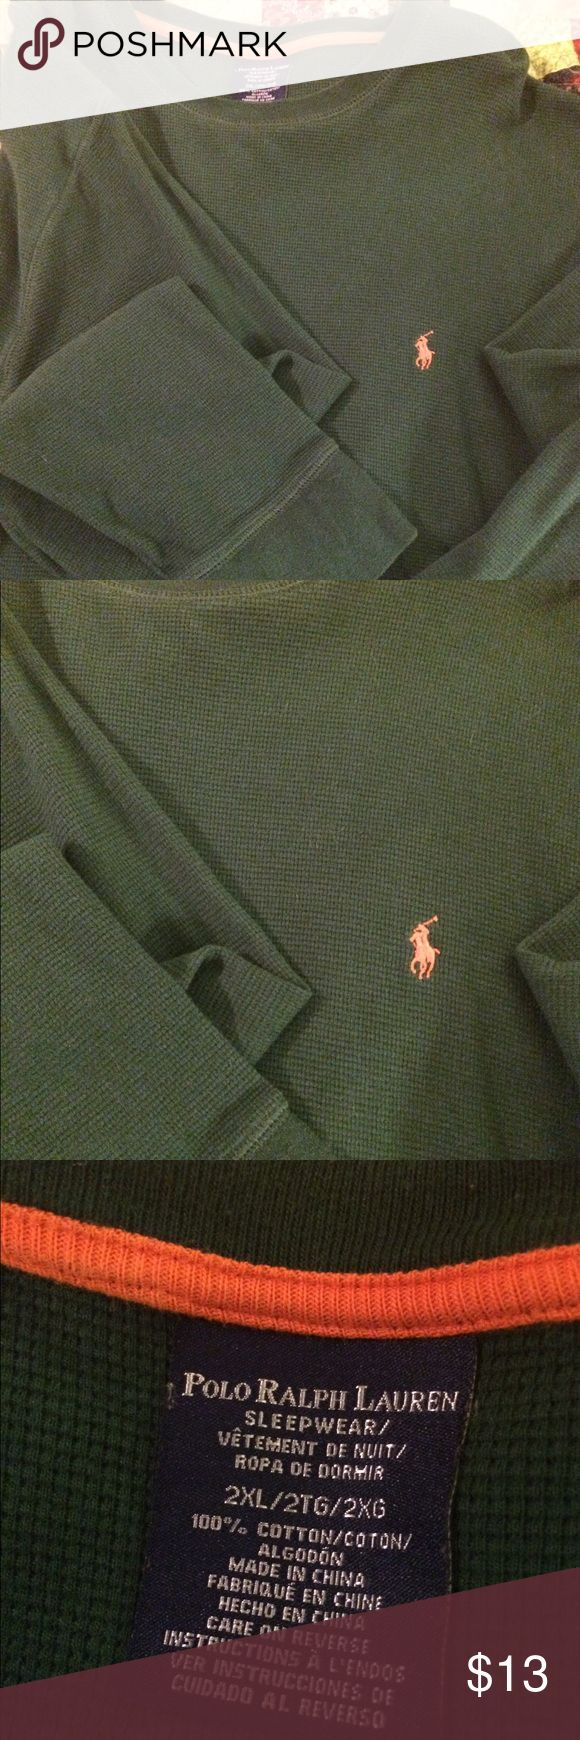 Ralph Lauren Polo men's thermal sleep shirt Lovely hunter green thermal long sleeve 2xl Ralph Laurn.polo shirt. Like new,  barely used in great condition! Polo by Ralph Lauren Shirts Tees - Long Sleeve